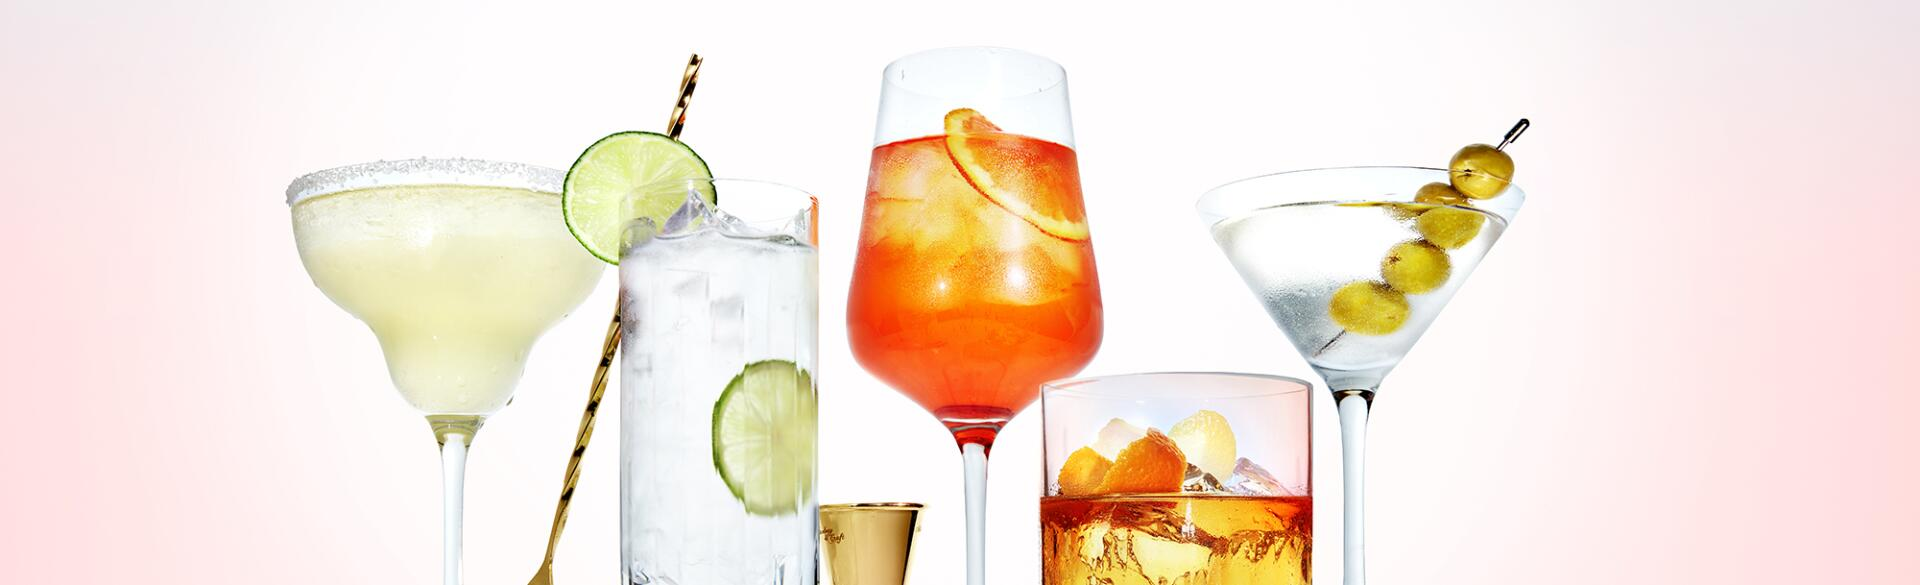 Summer-Cocktails-To-Make-At-Home_20GF1505_6653_group_R1_2000.jpg